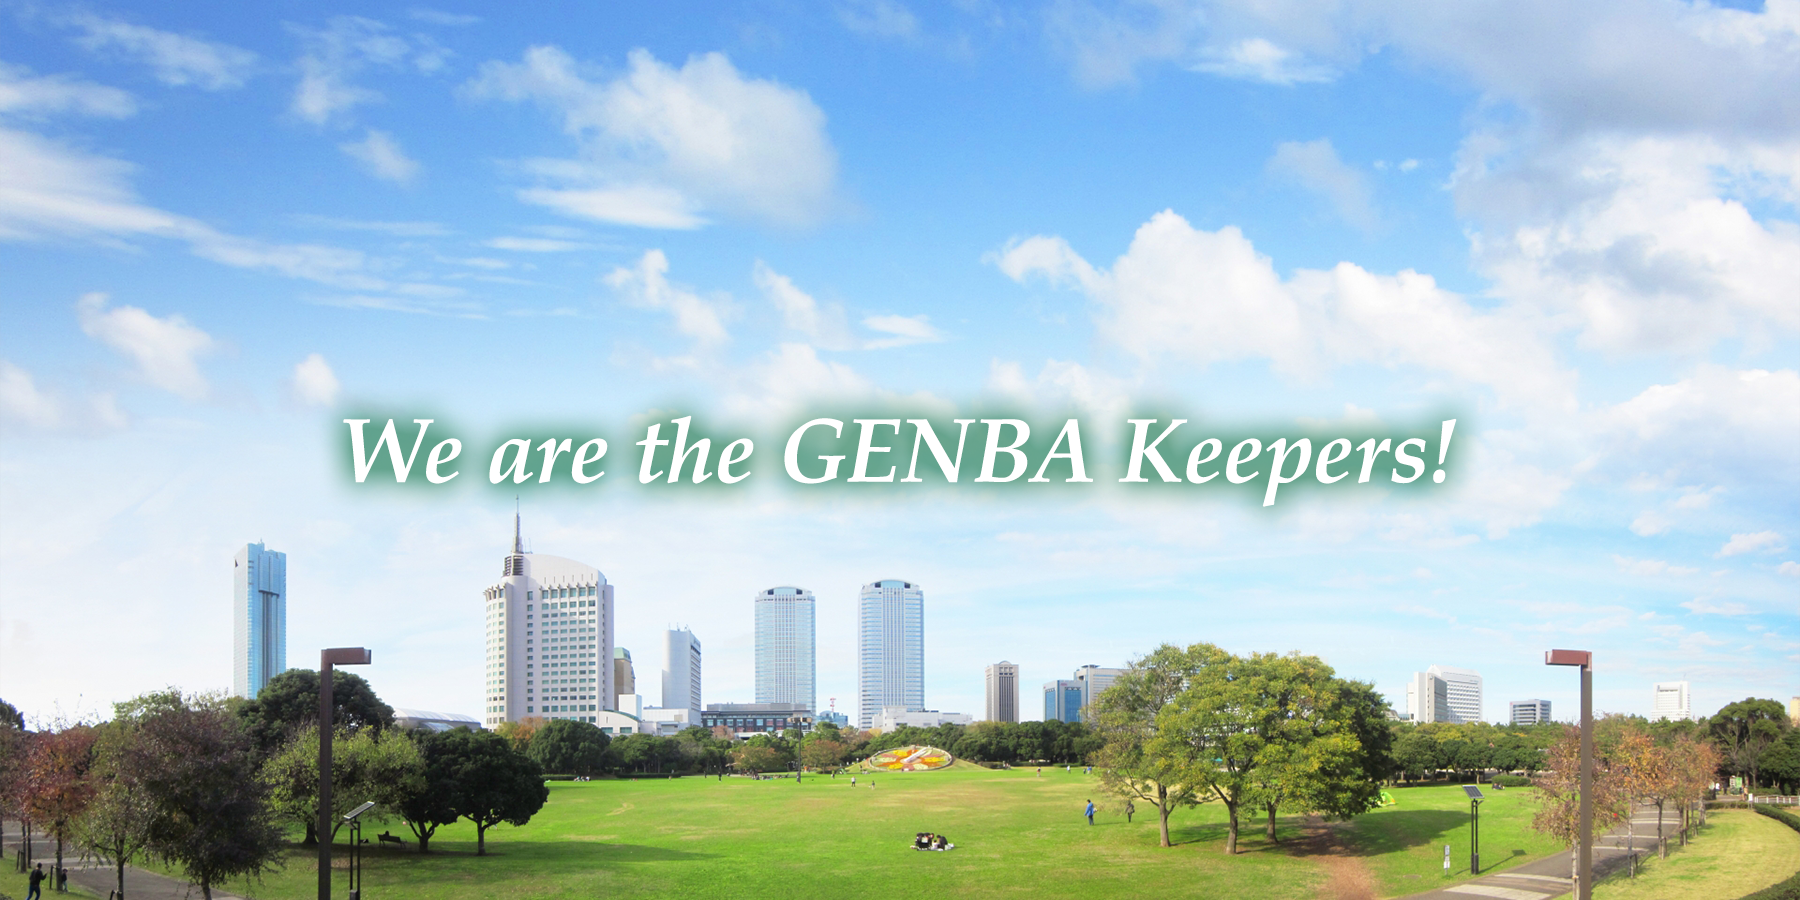 WE ARE THE GENBA KEEPRES